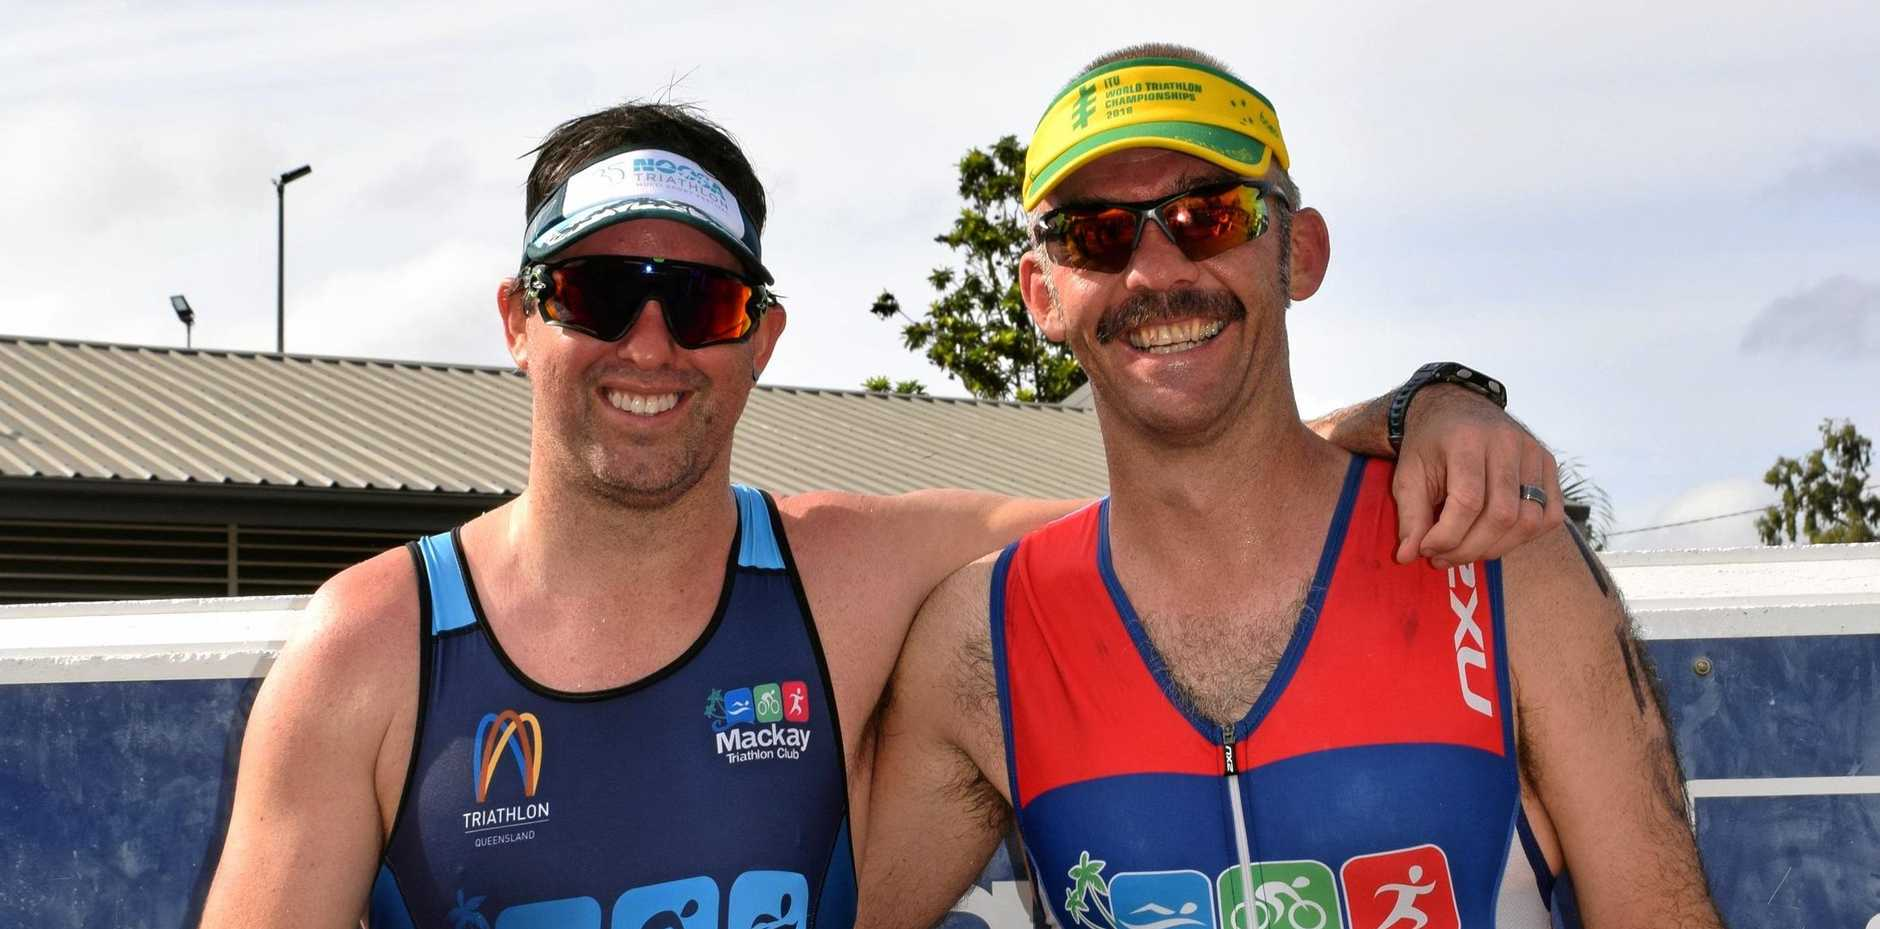 ALL SMILES: Luke Gottke, who placed second in the Open Male category, and winner James Leonard.